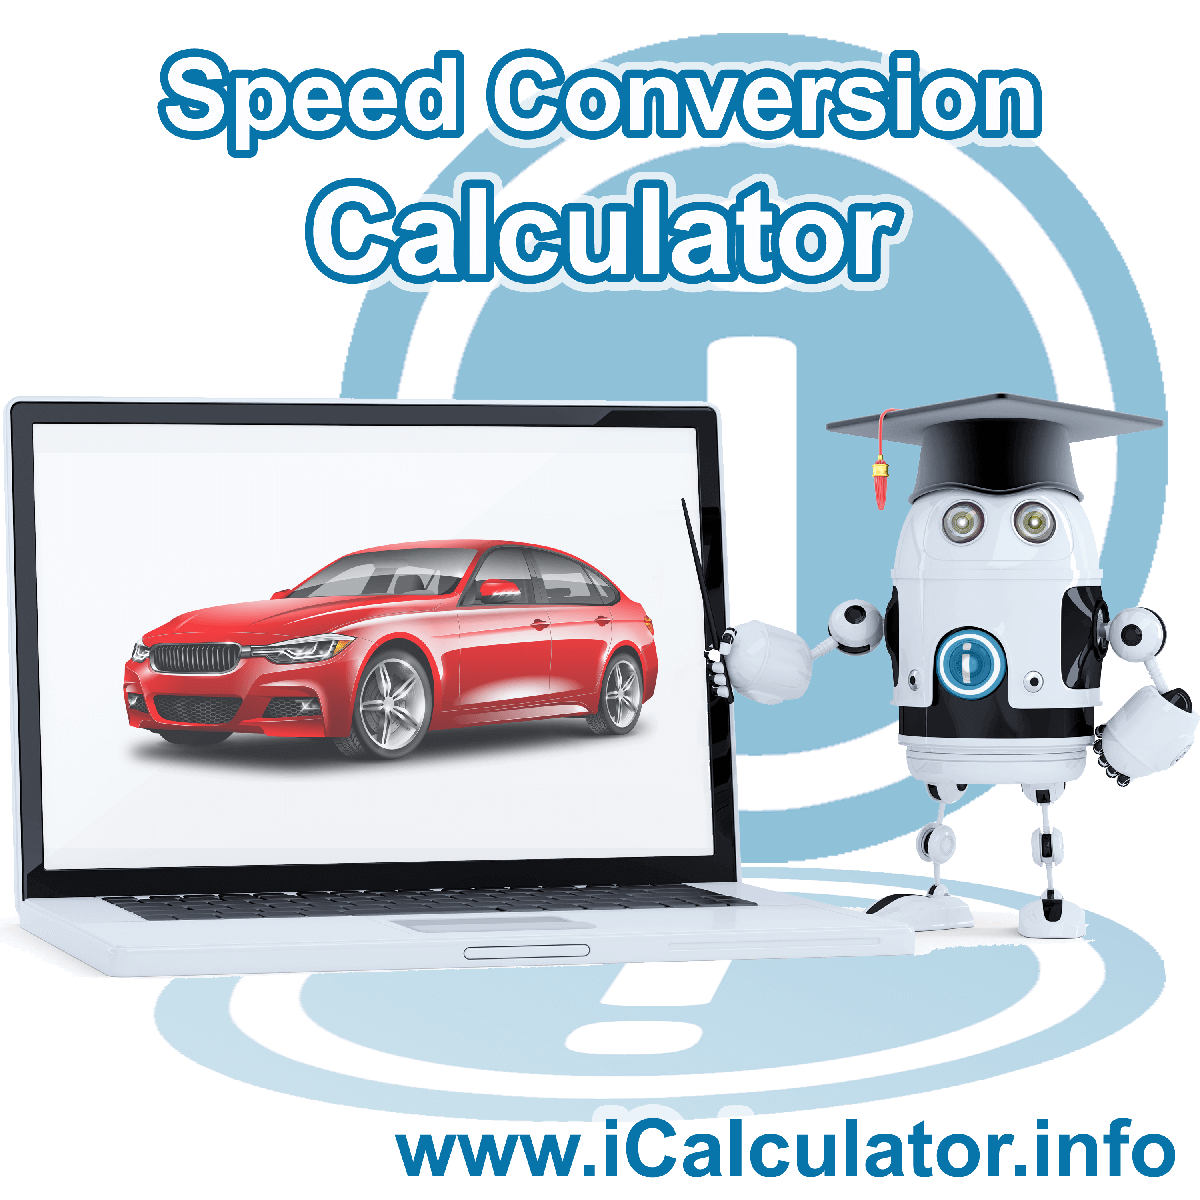 Speed Conversion Calculator: This image shows Speed Conversion formula and algorythms associated calculations used by the Speed Conversion Calculator